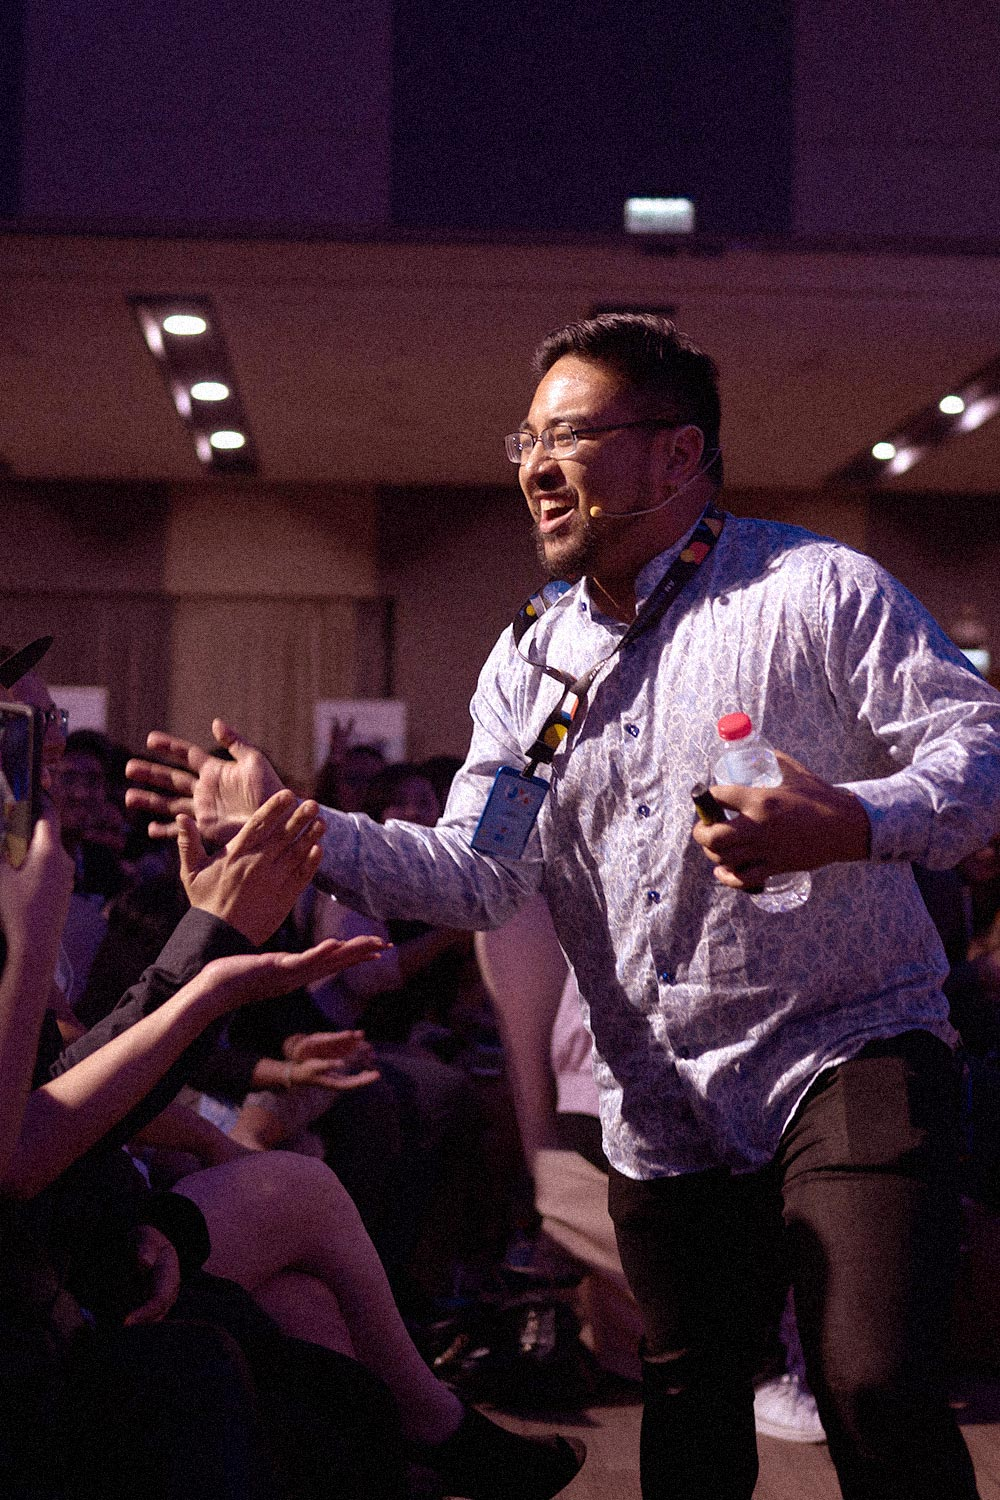 Speaker from UX+ Conference 2019 with the crowd